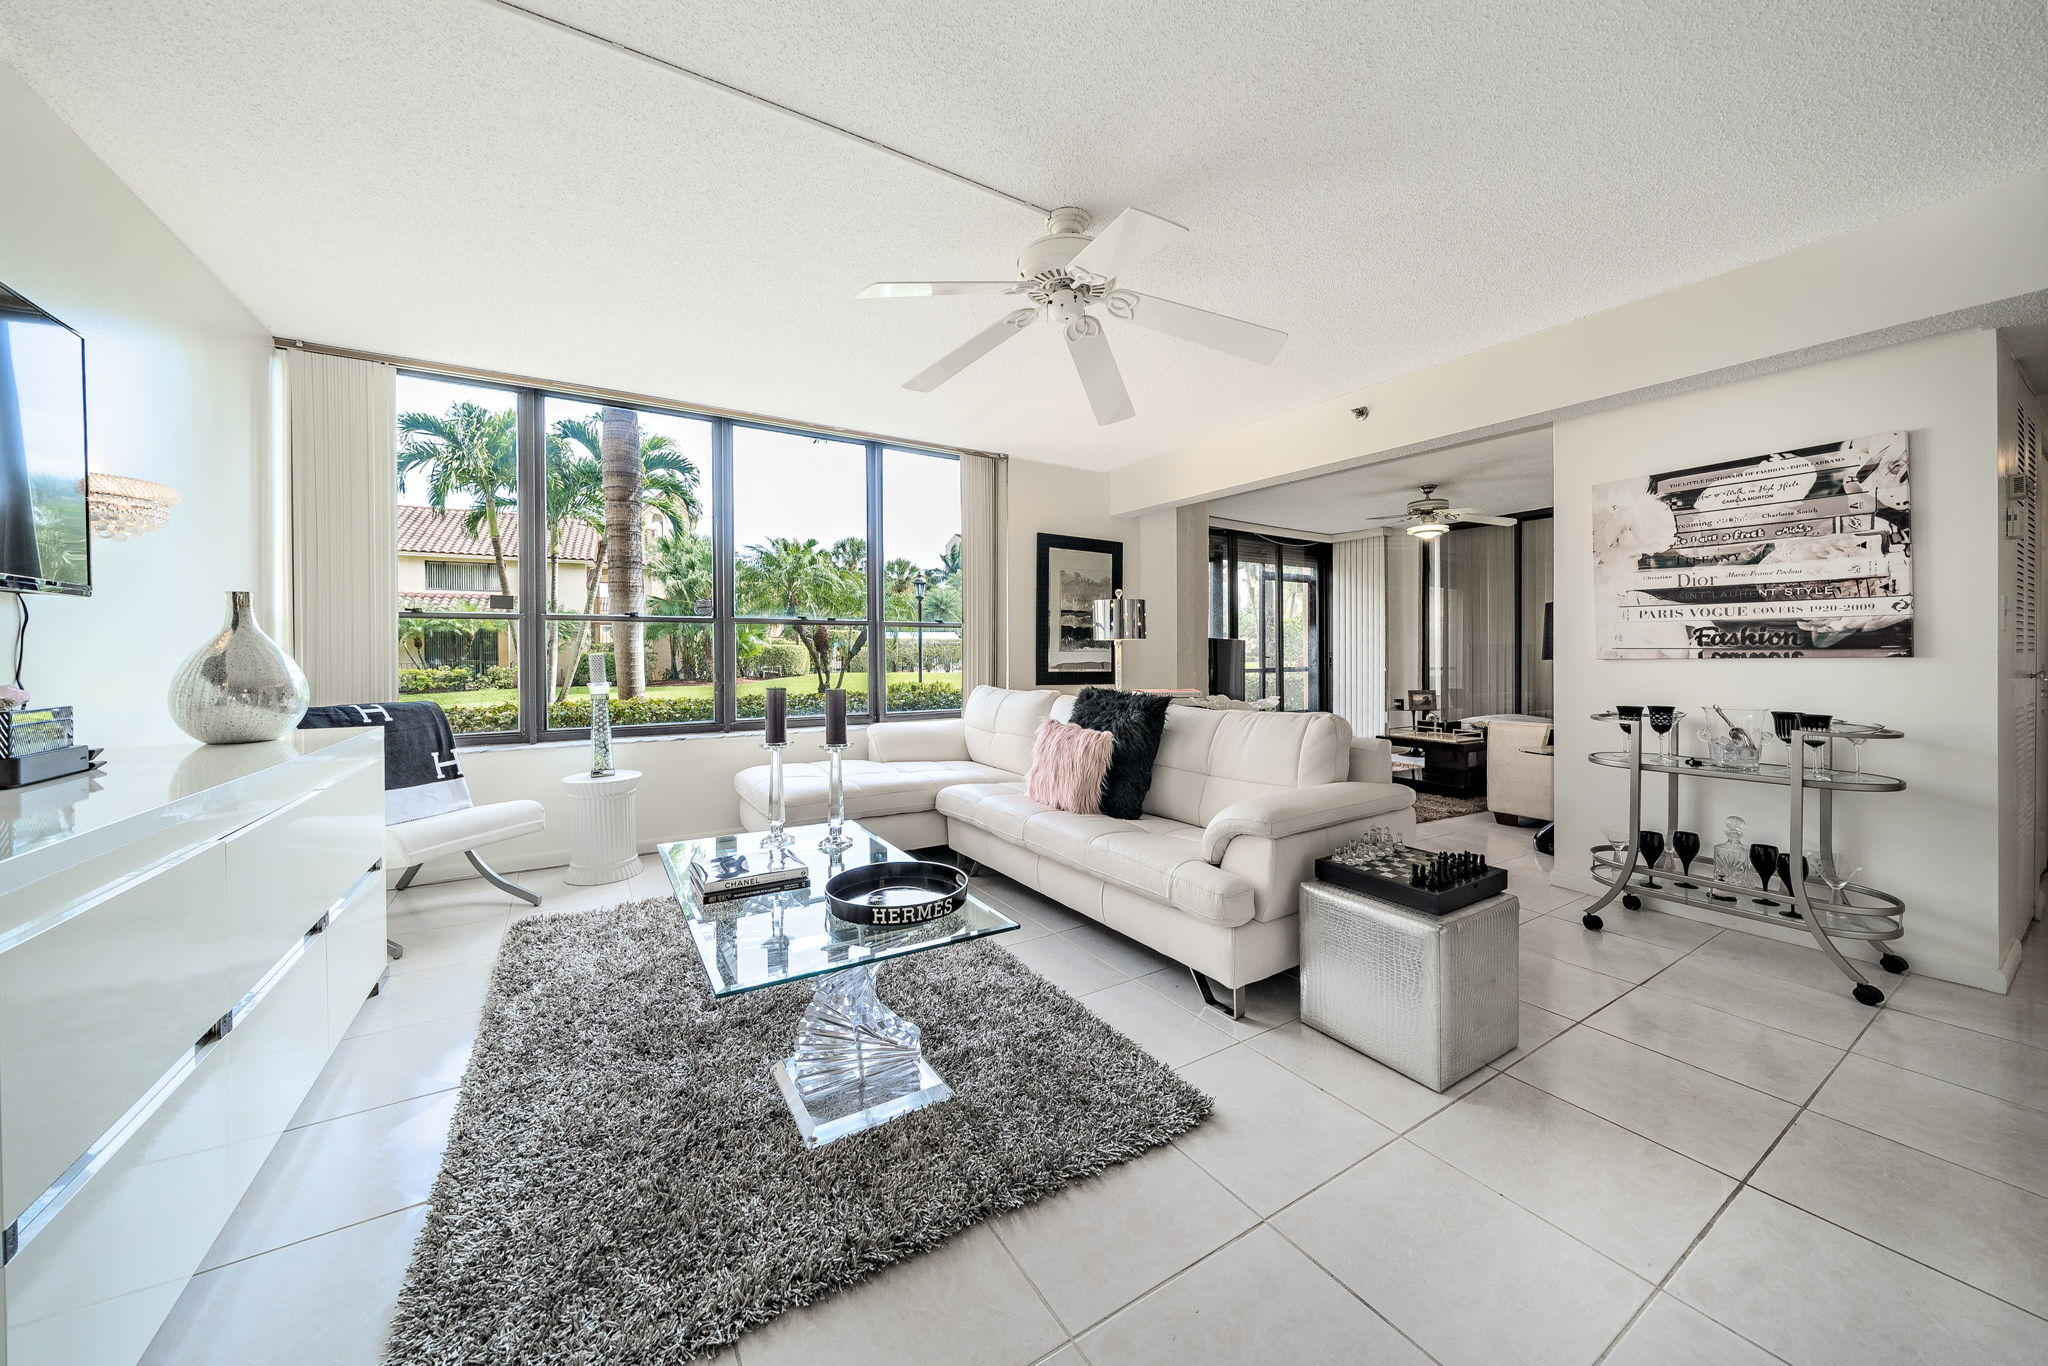 Home for sale in PROMENADE AT BOCA POINTE Boca Raton Florida